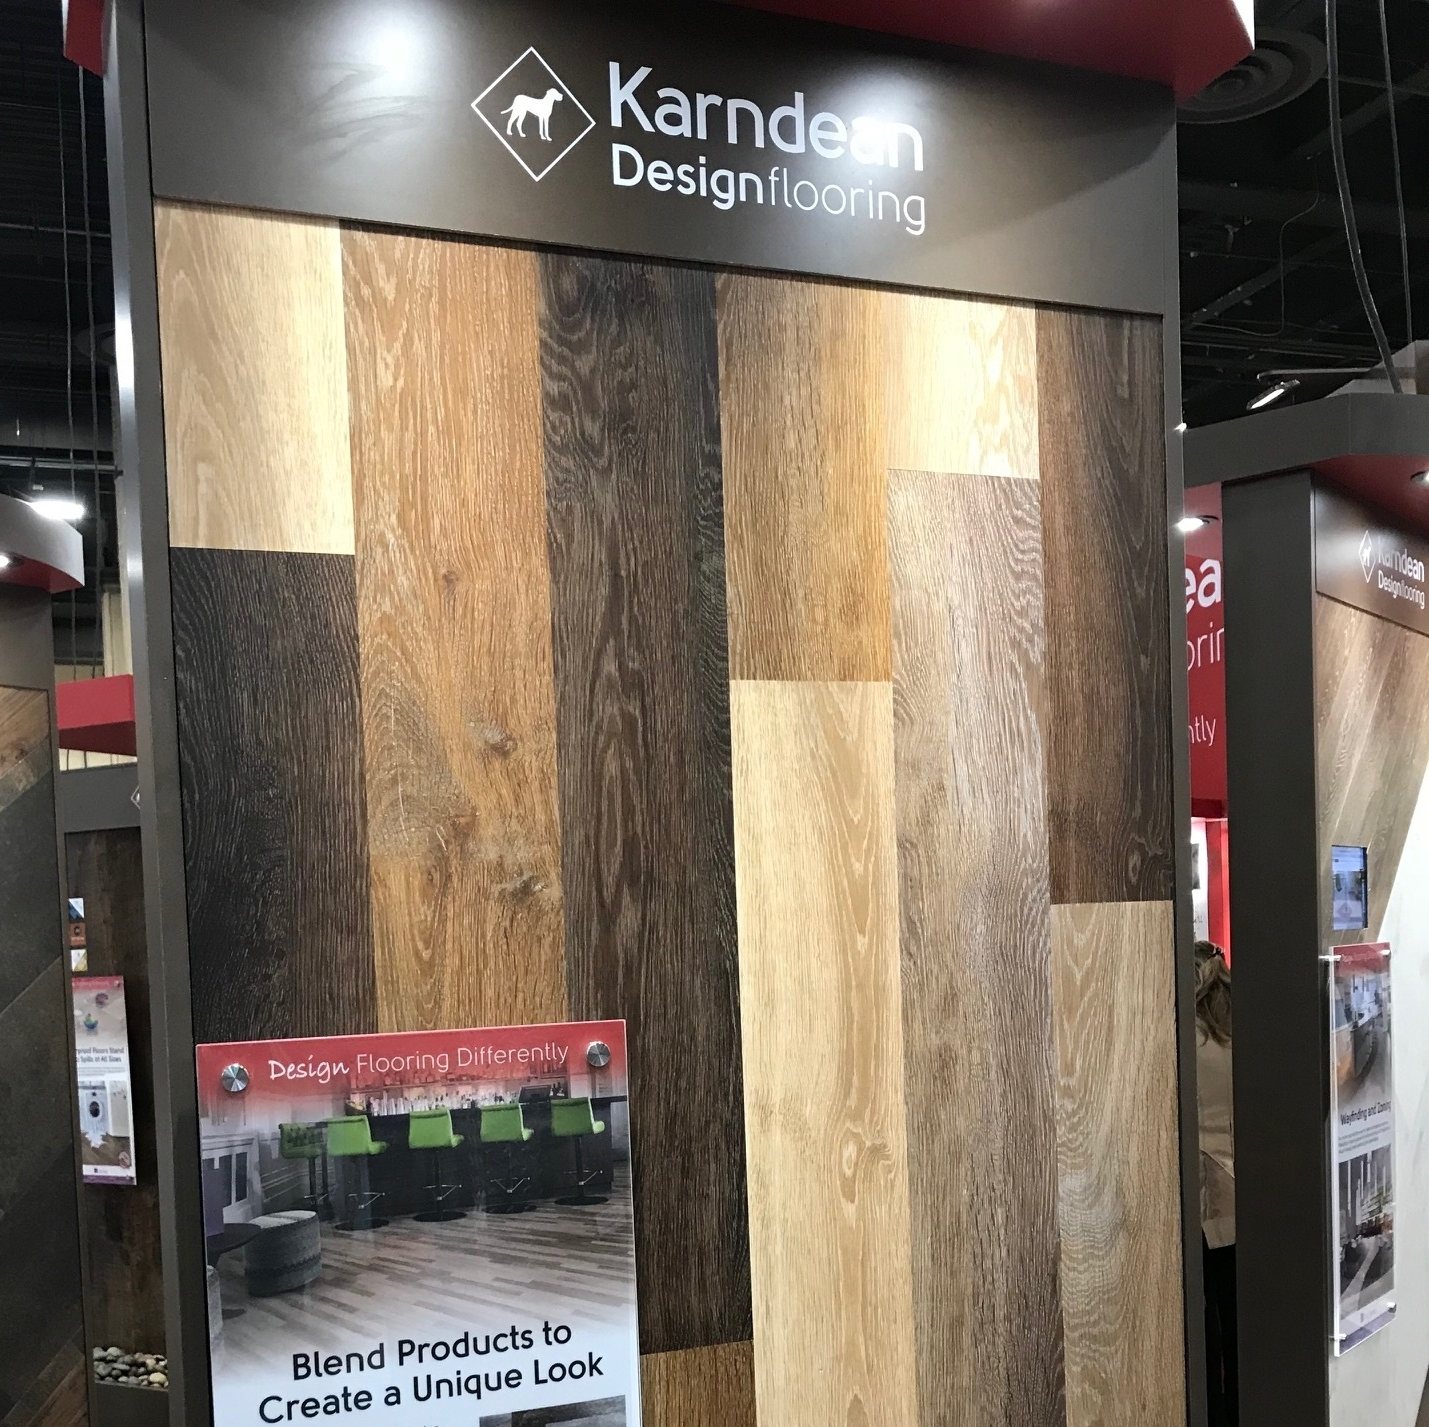 Visiting all the booths and seeing the new innovation was inspiring. Karndean was just one of the many that showed off their new designs for 2018. We saw everything from waterproof to magnetic flooring. -